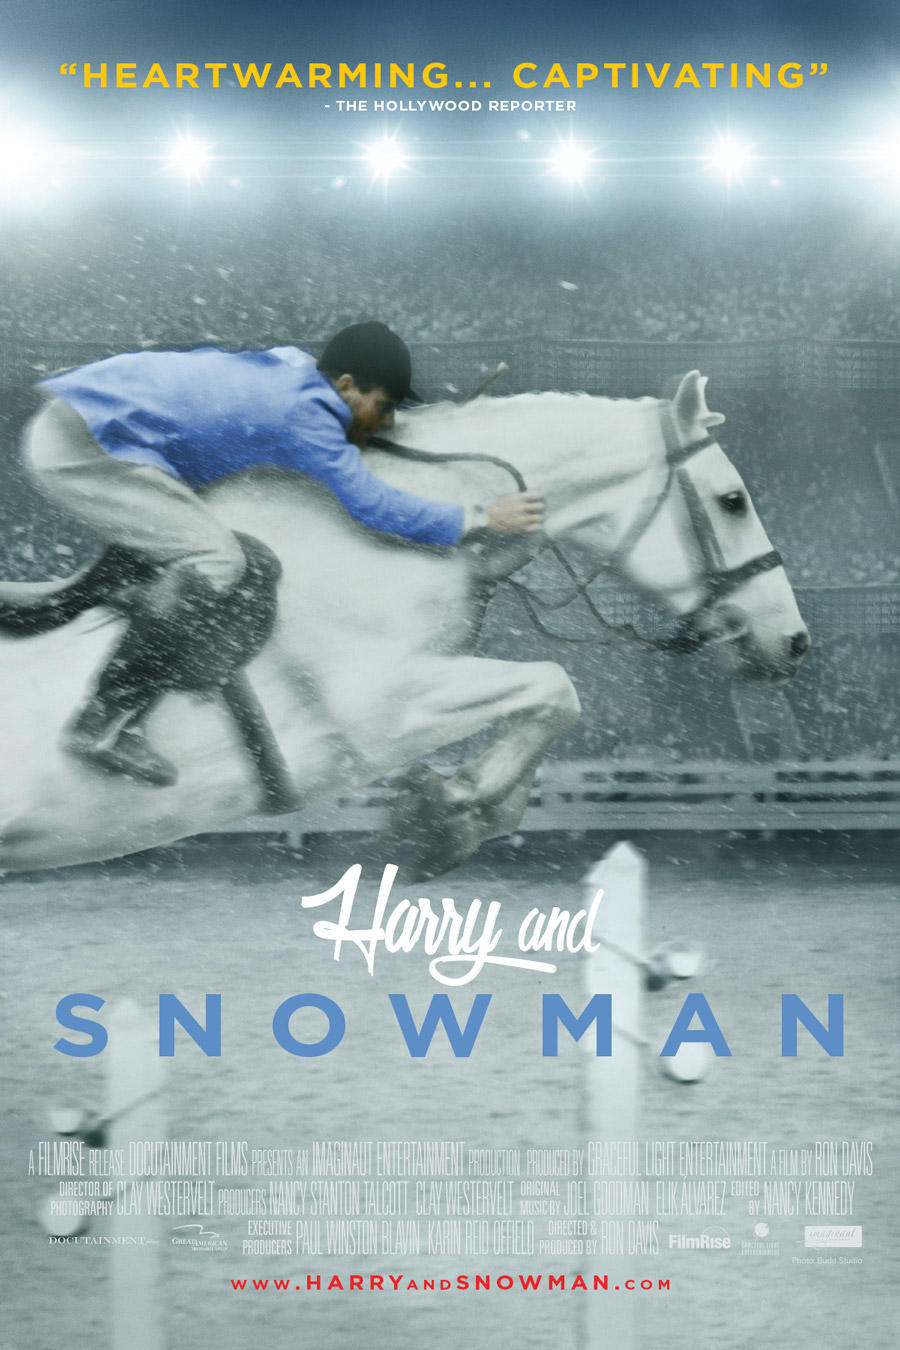 Harry and Snowman poster art